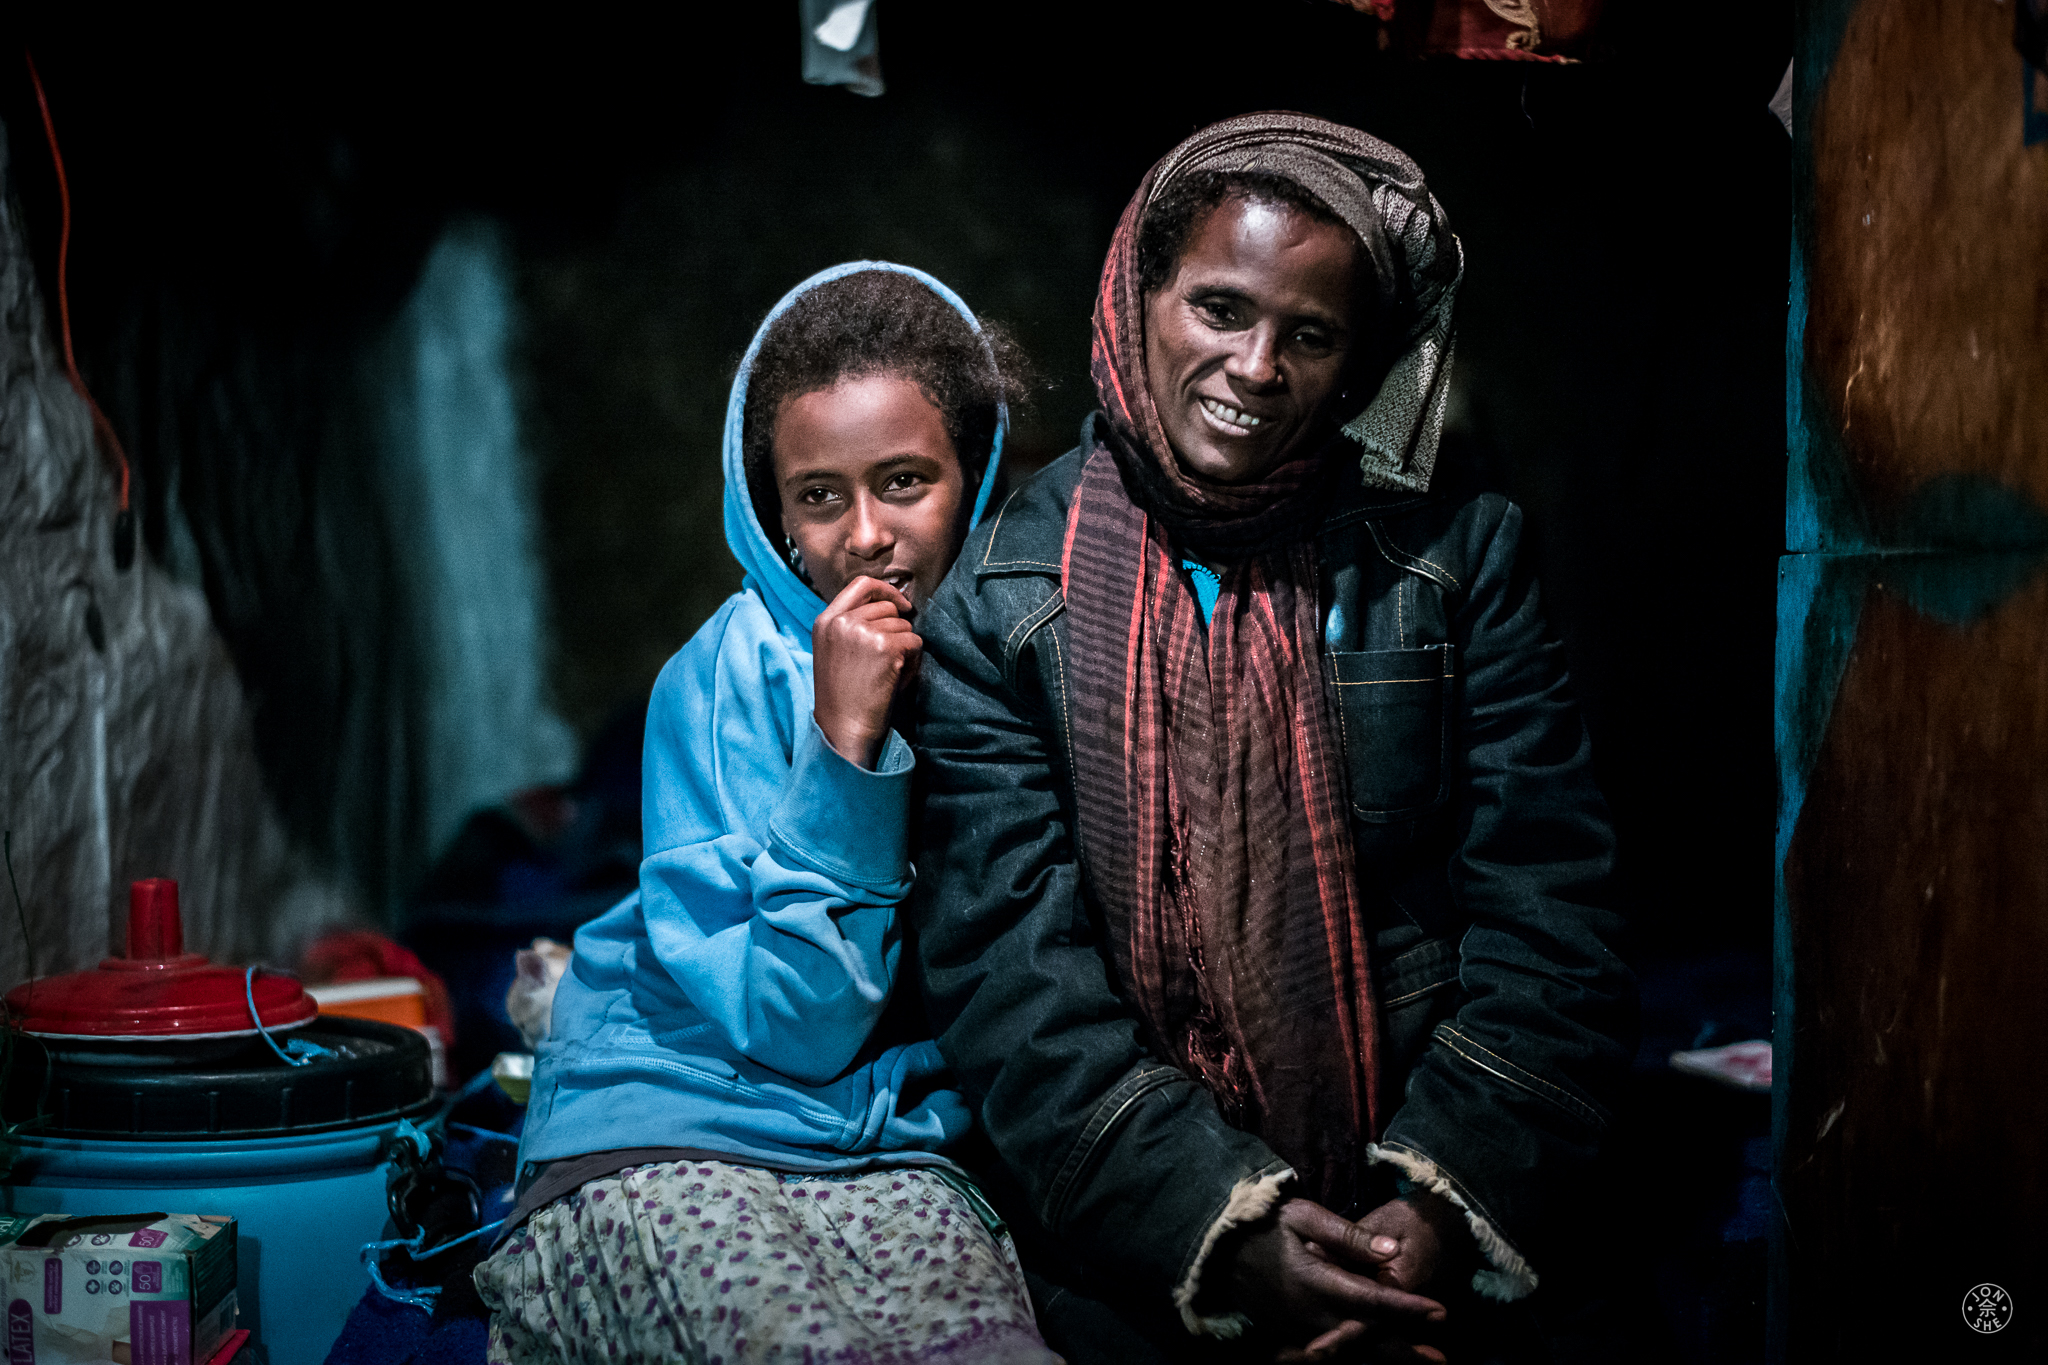 I will always remember this lady and her daughter as my first hosts in this beautiful country - the first to welcome me into their home. Addis Ababa, Ethiopia. © Jon She 2017.